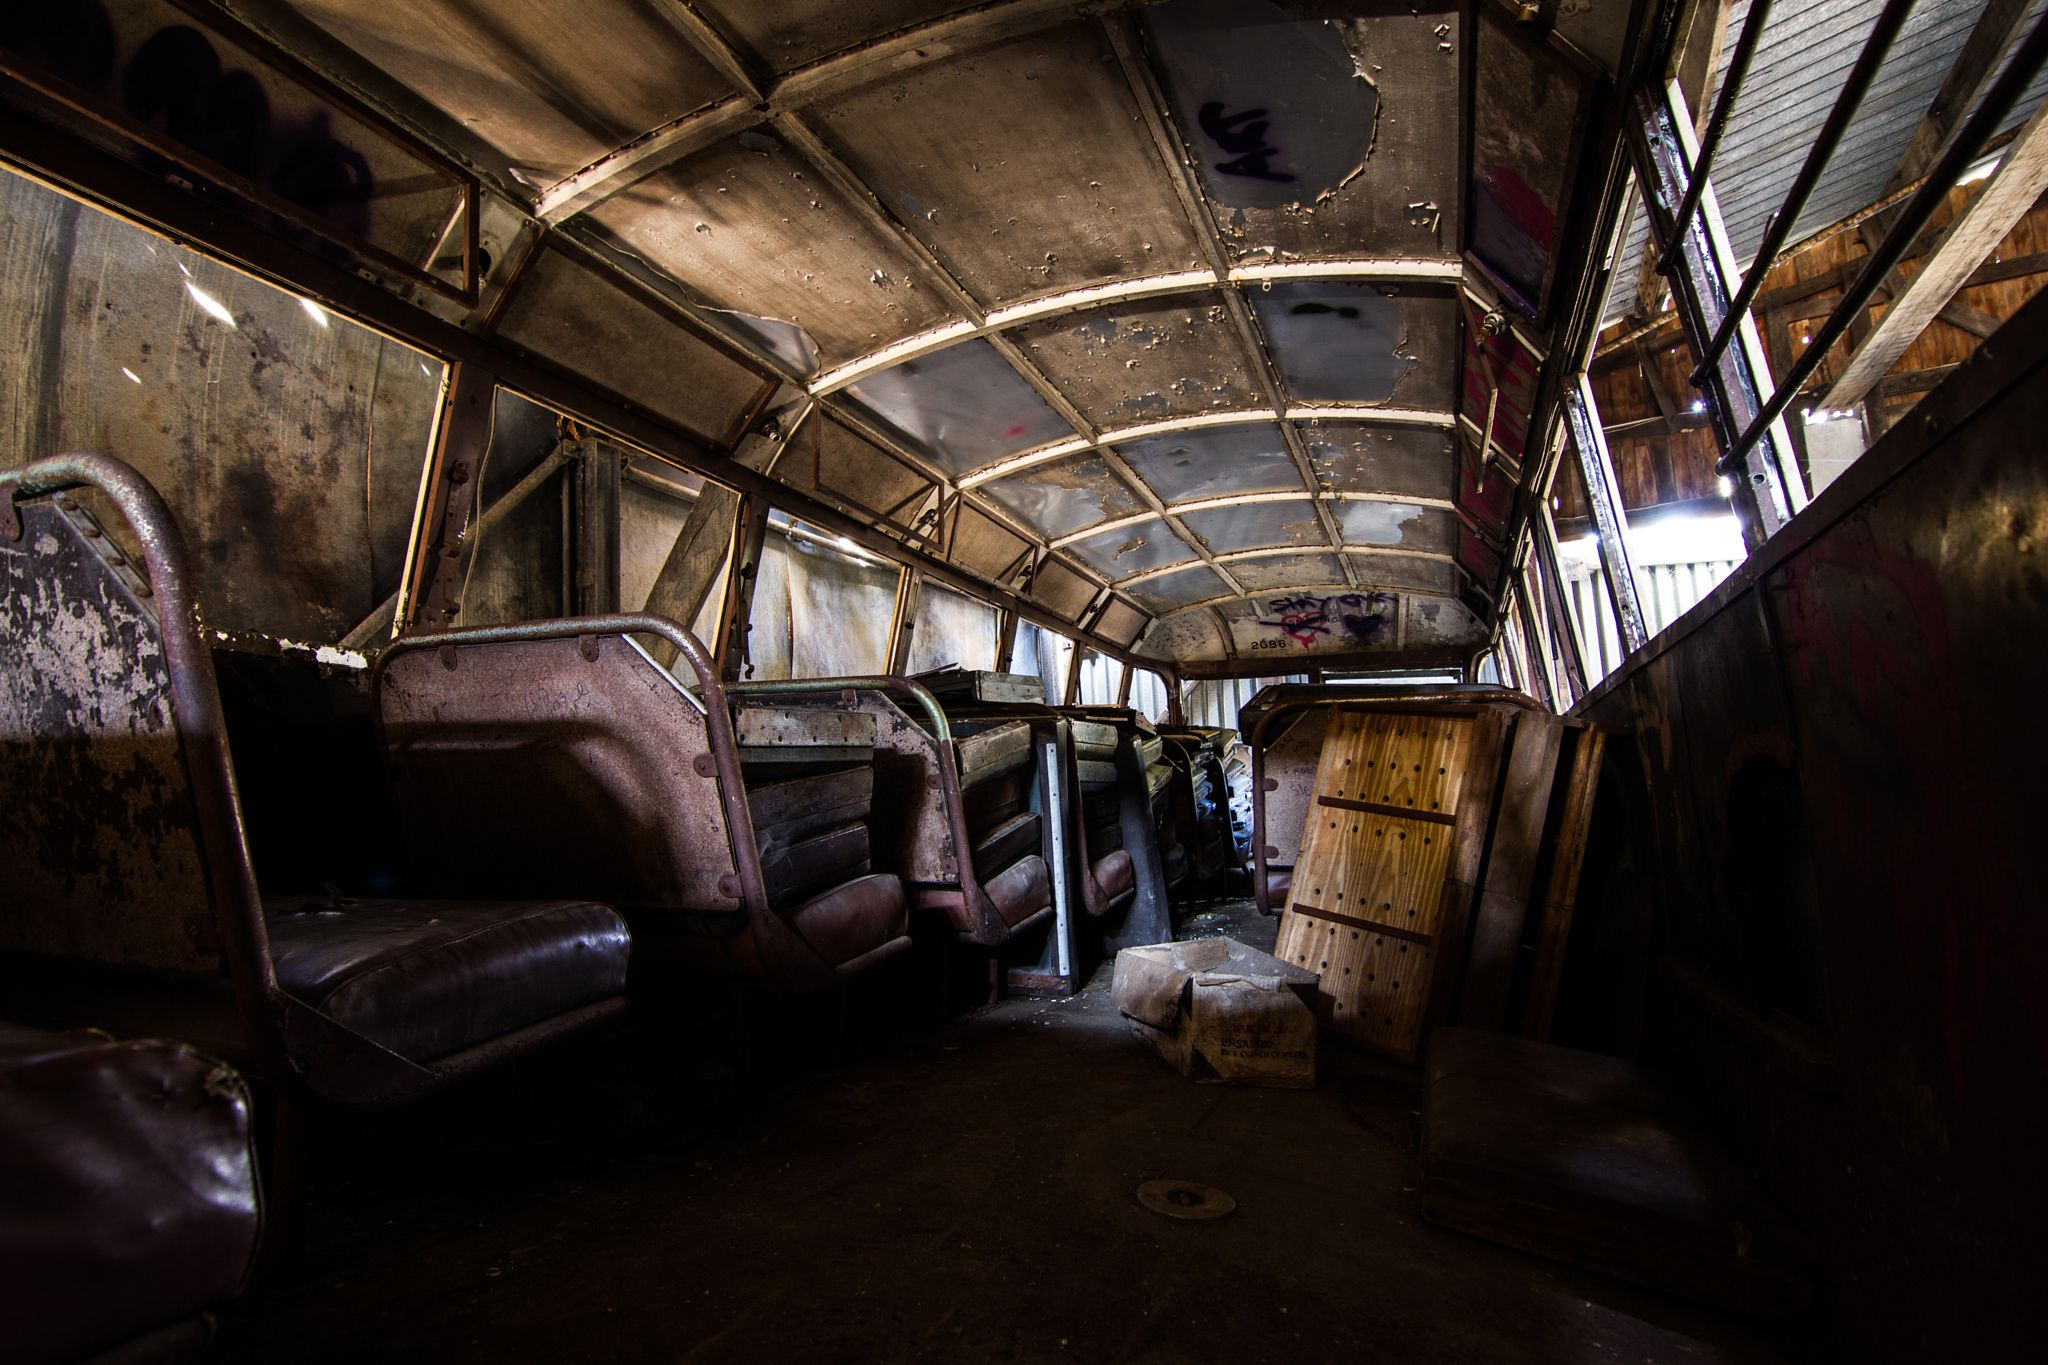 All seats taken by Brian Stewart / 500px